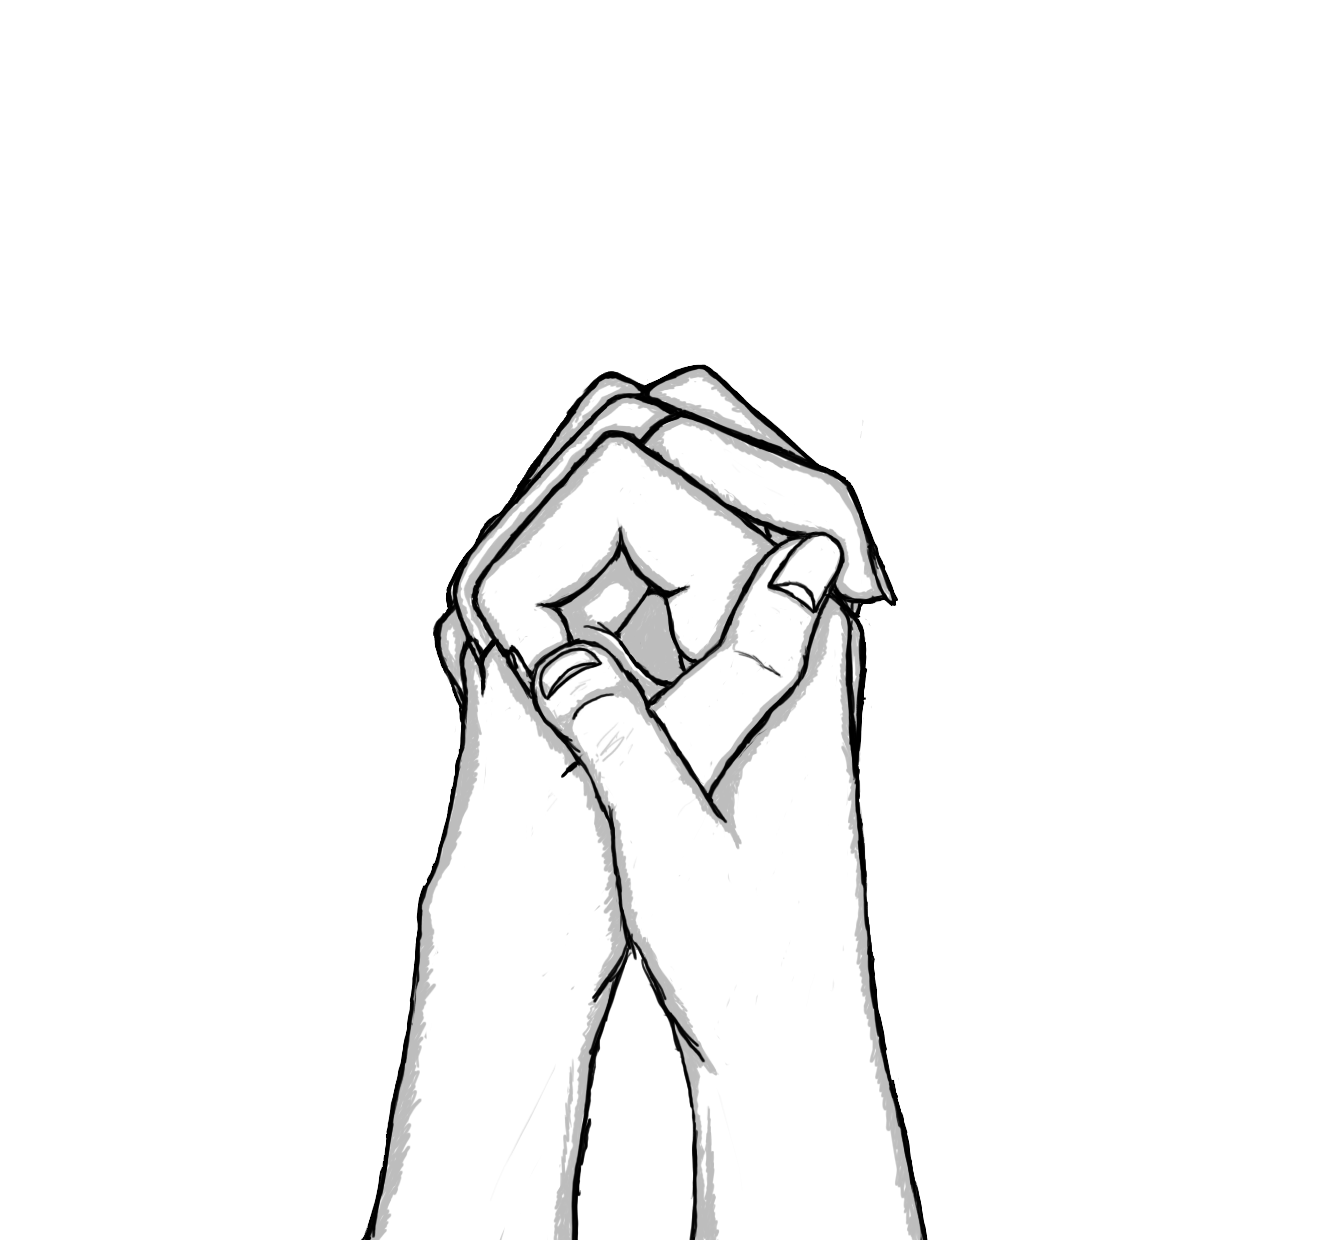 Png Holding Hands Transparent Holding Hands Png Images Pluspng